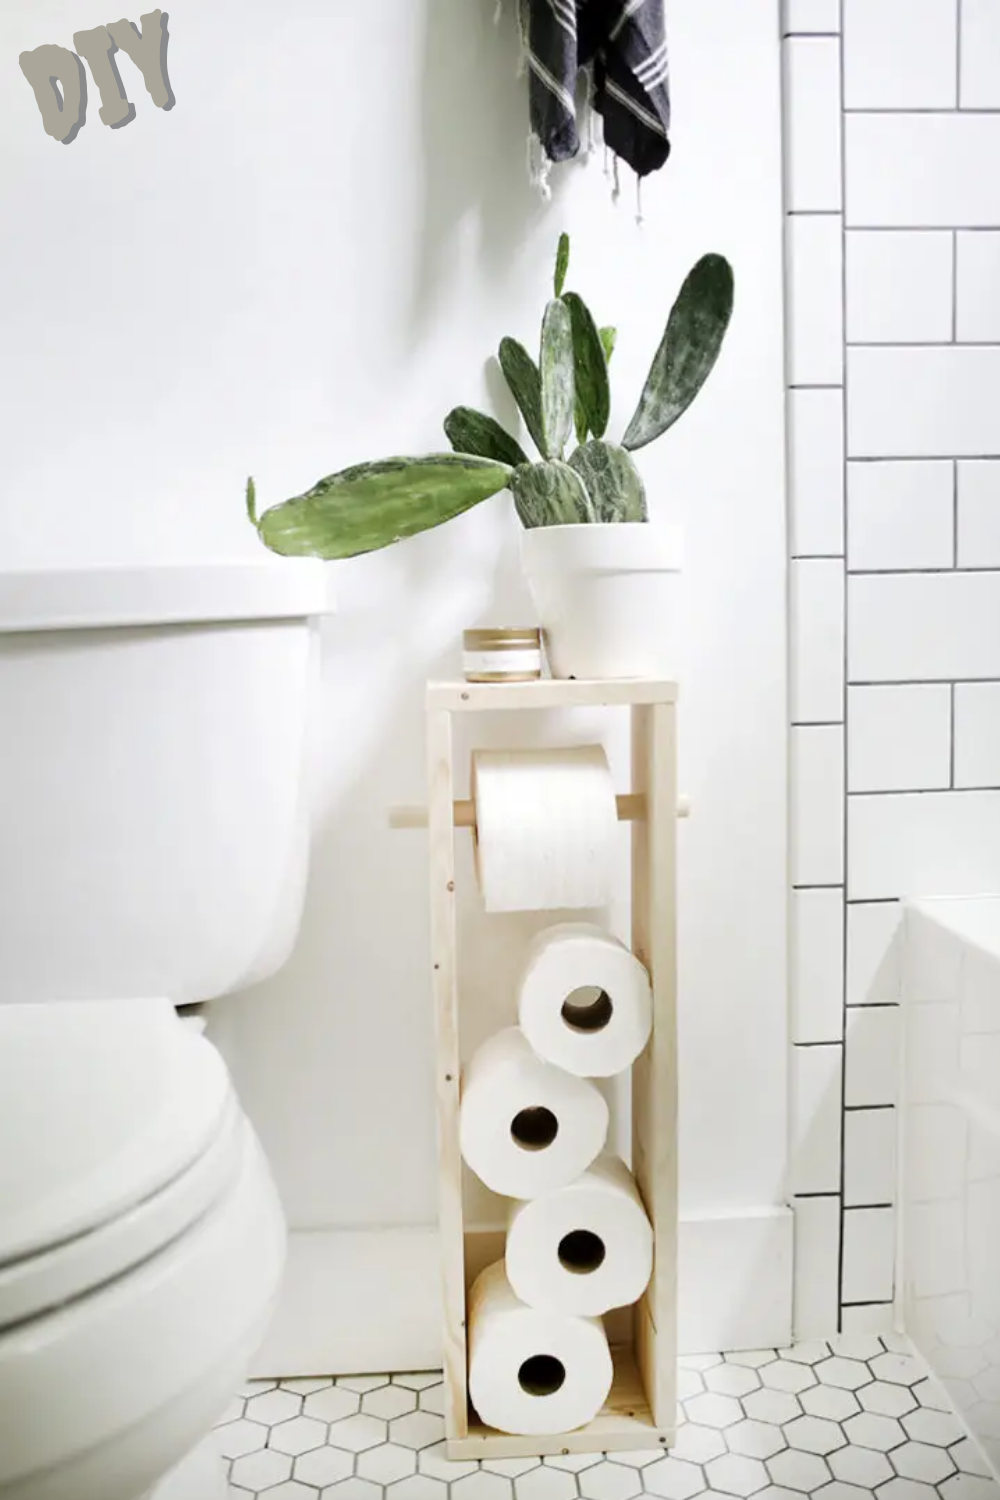 40 Creative Ways To Store Toilet Paper In Small Spaces That Never Crossed Your Mind In 2020 Diy Toilet Paper Holder Toilet Paper Stand Diy Toilet